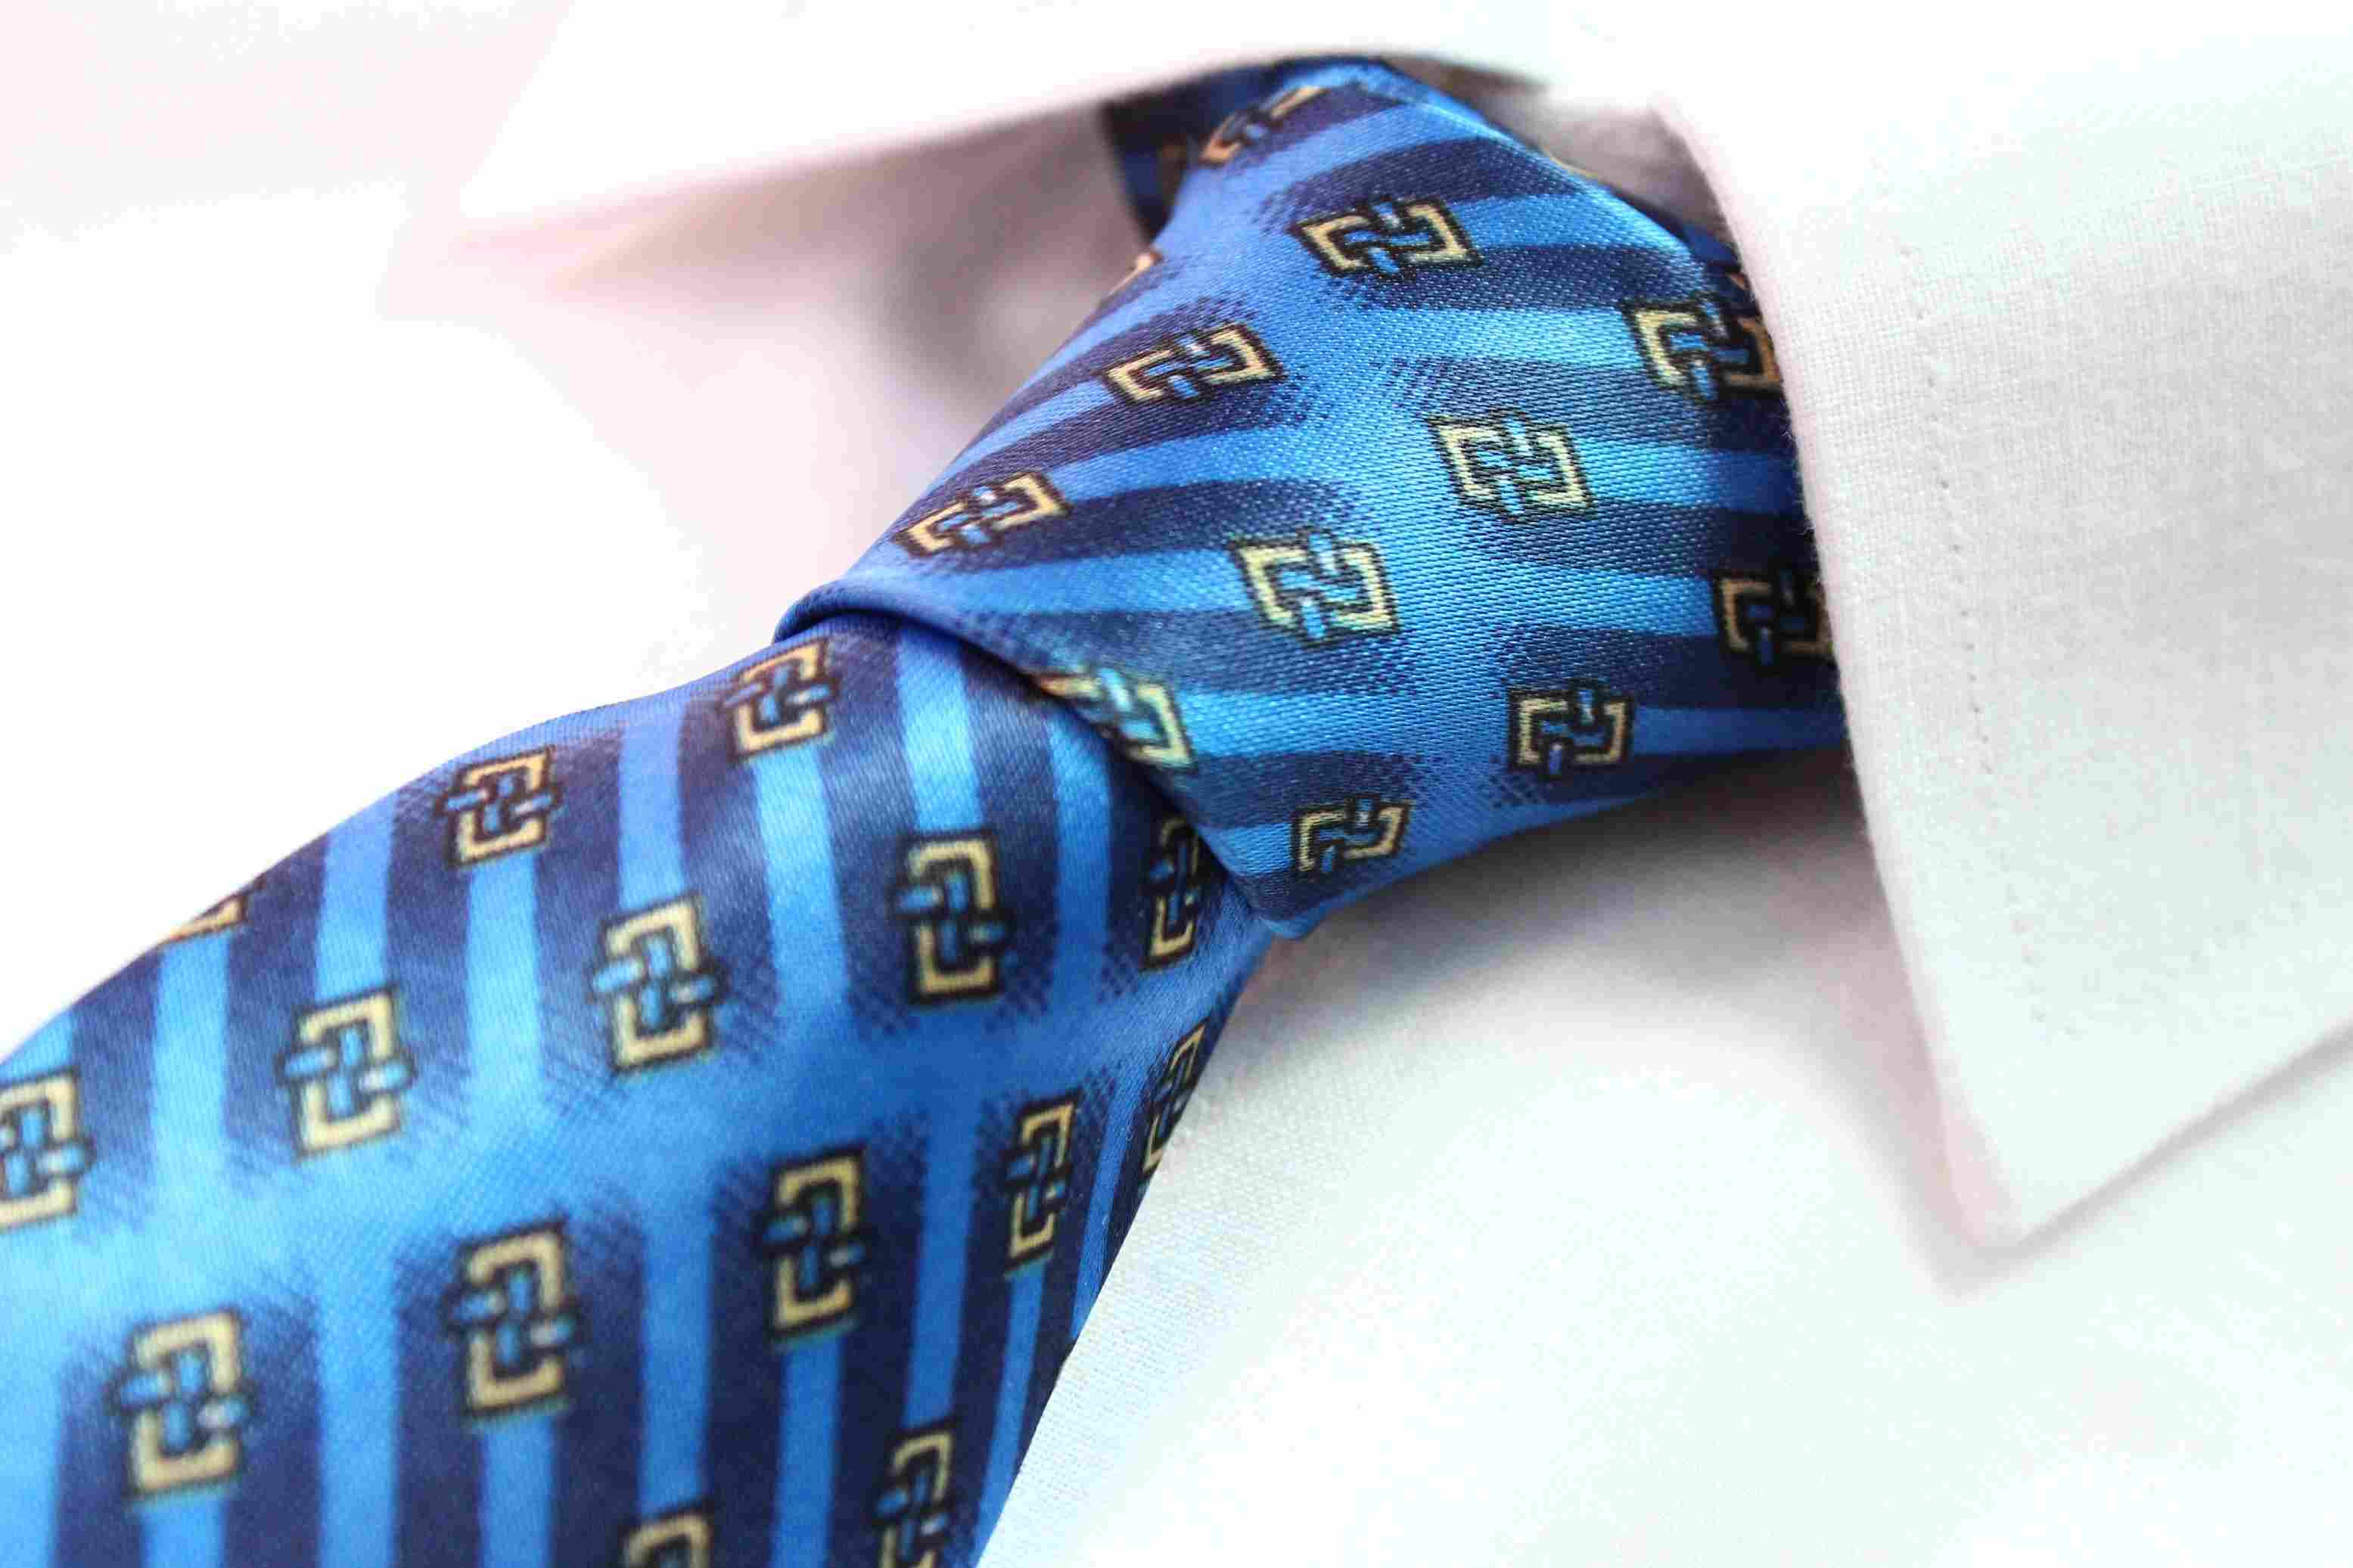 Close up of a blue patterned tie